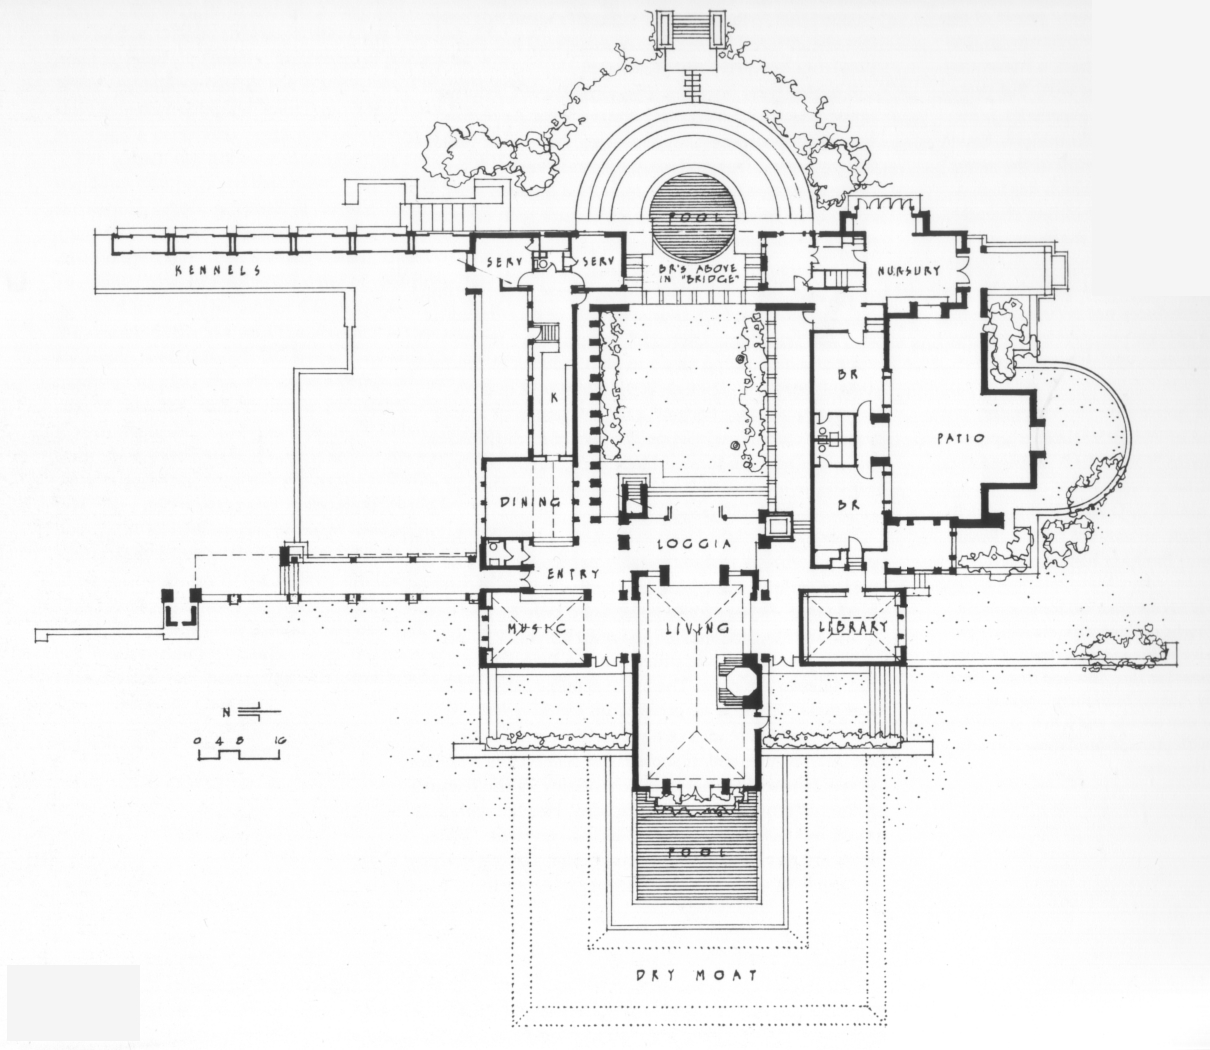 Enclosed courtyard house plans house plans home designs for Enclosed courtyard house plans